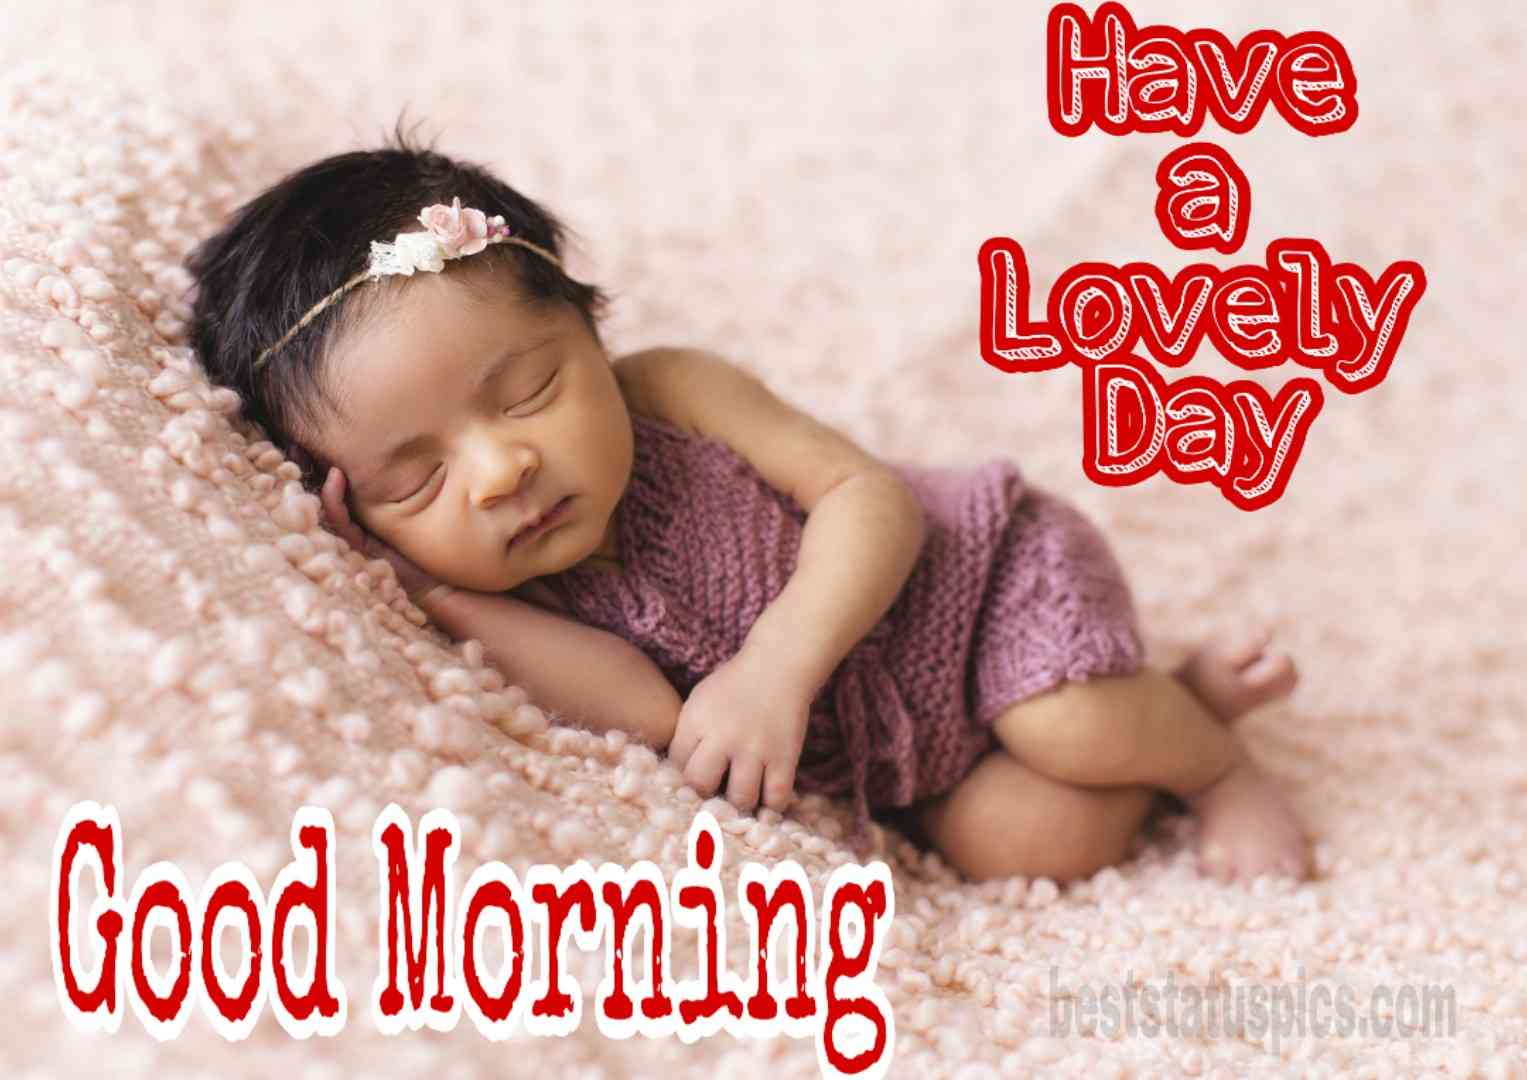 Cute little baby good morning images